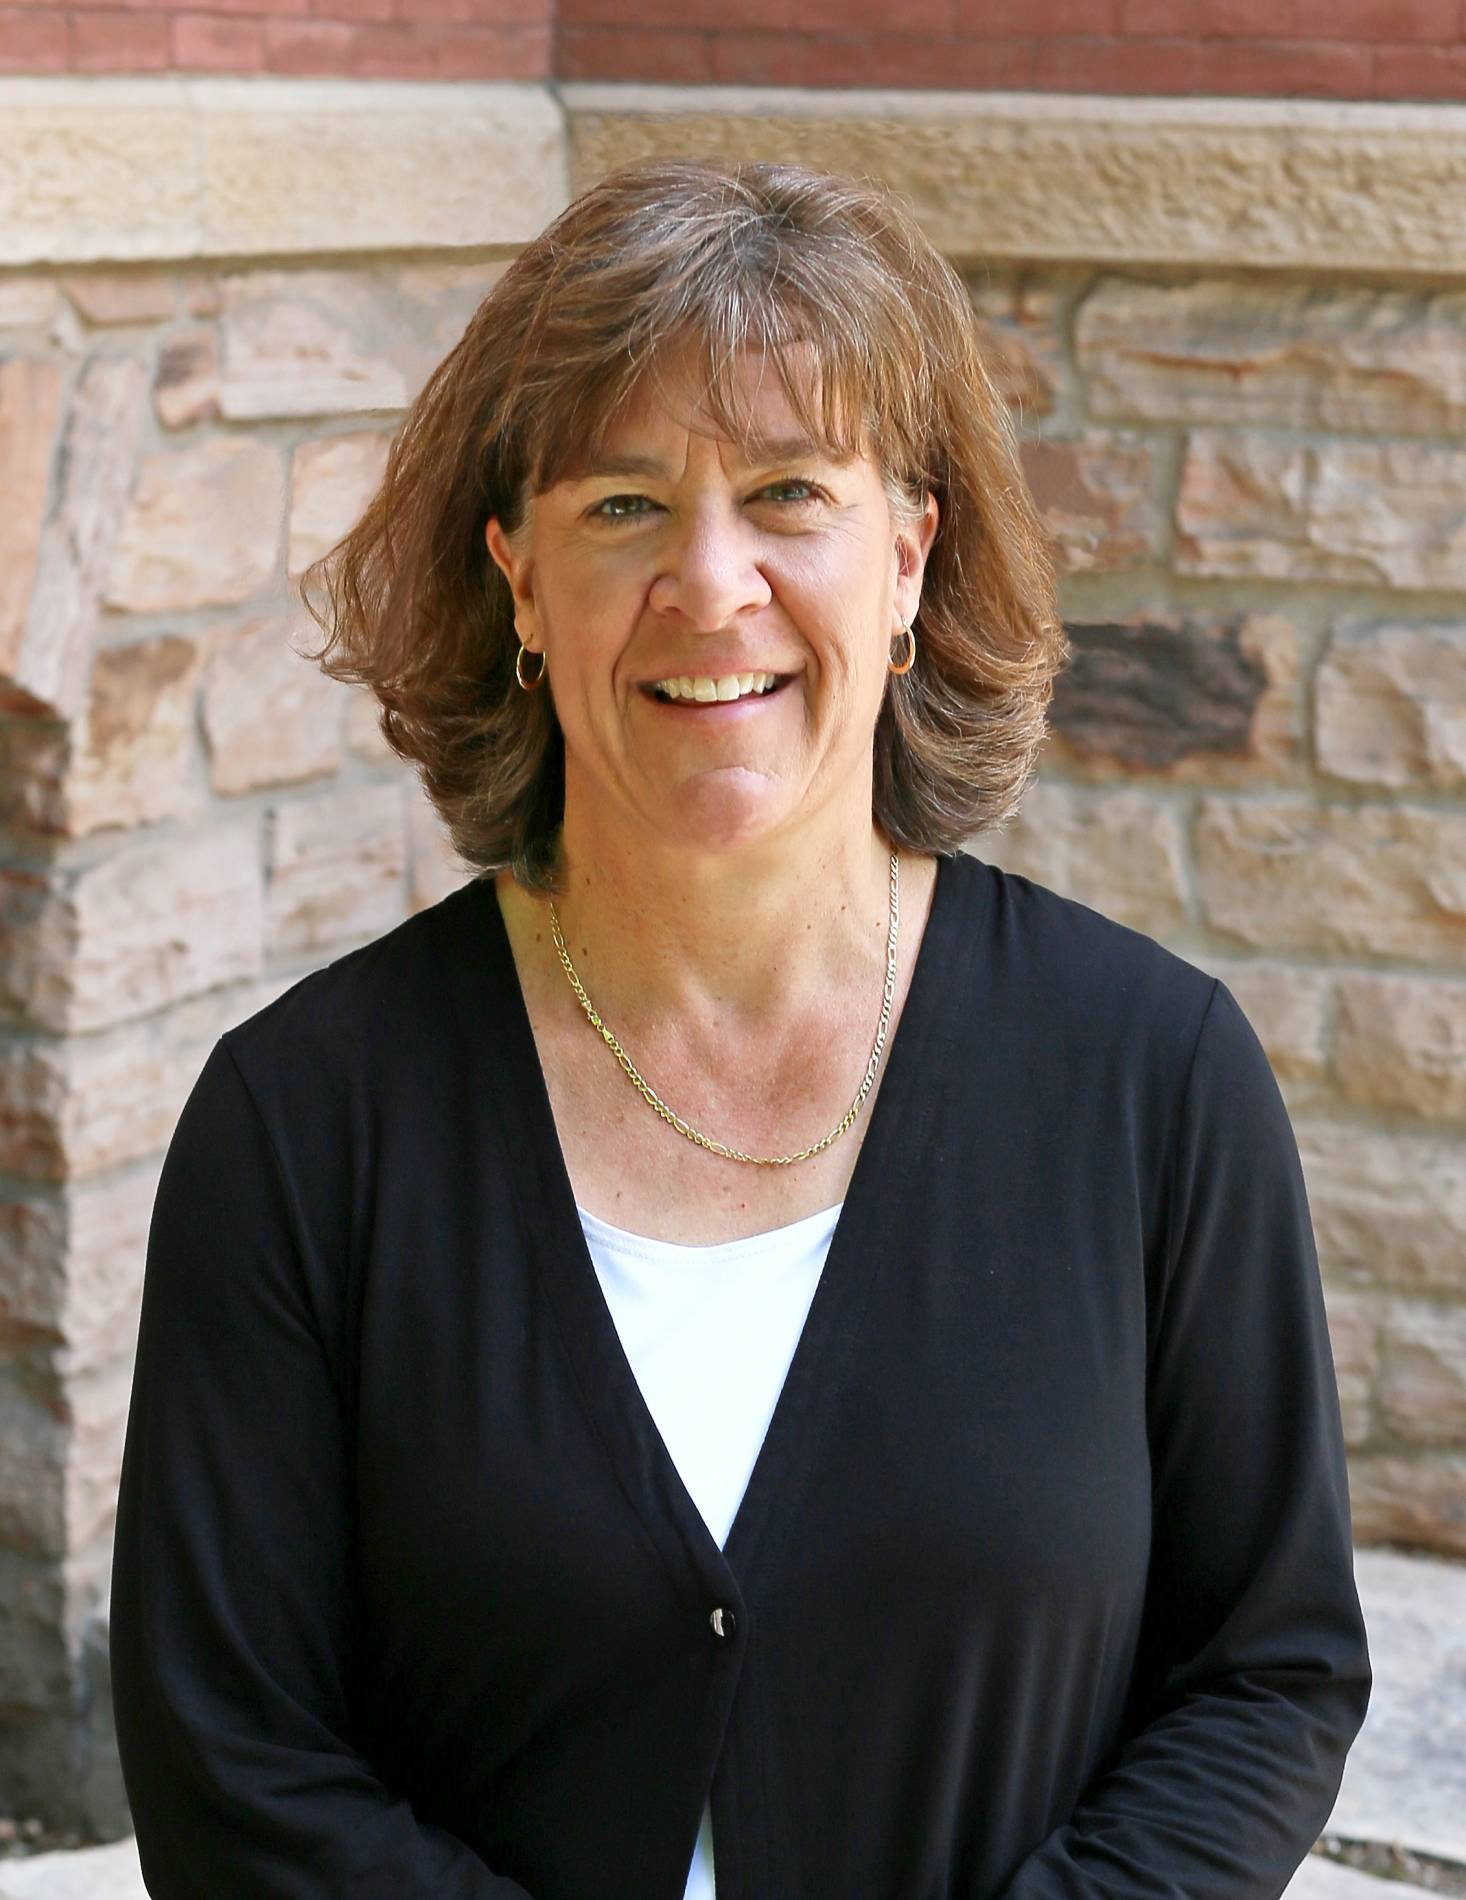 Tracy Nelson, PhD, Director of ColoradoSPH at CSU